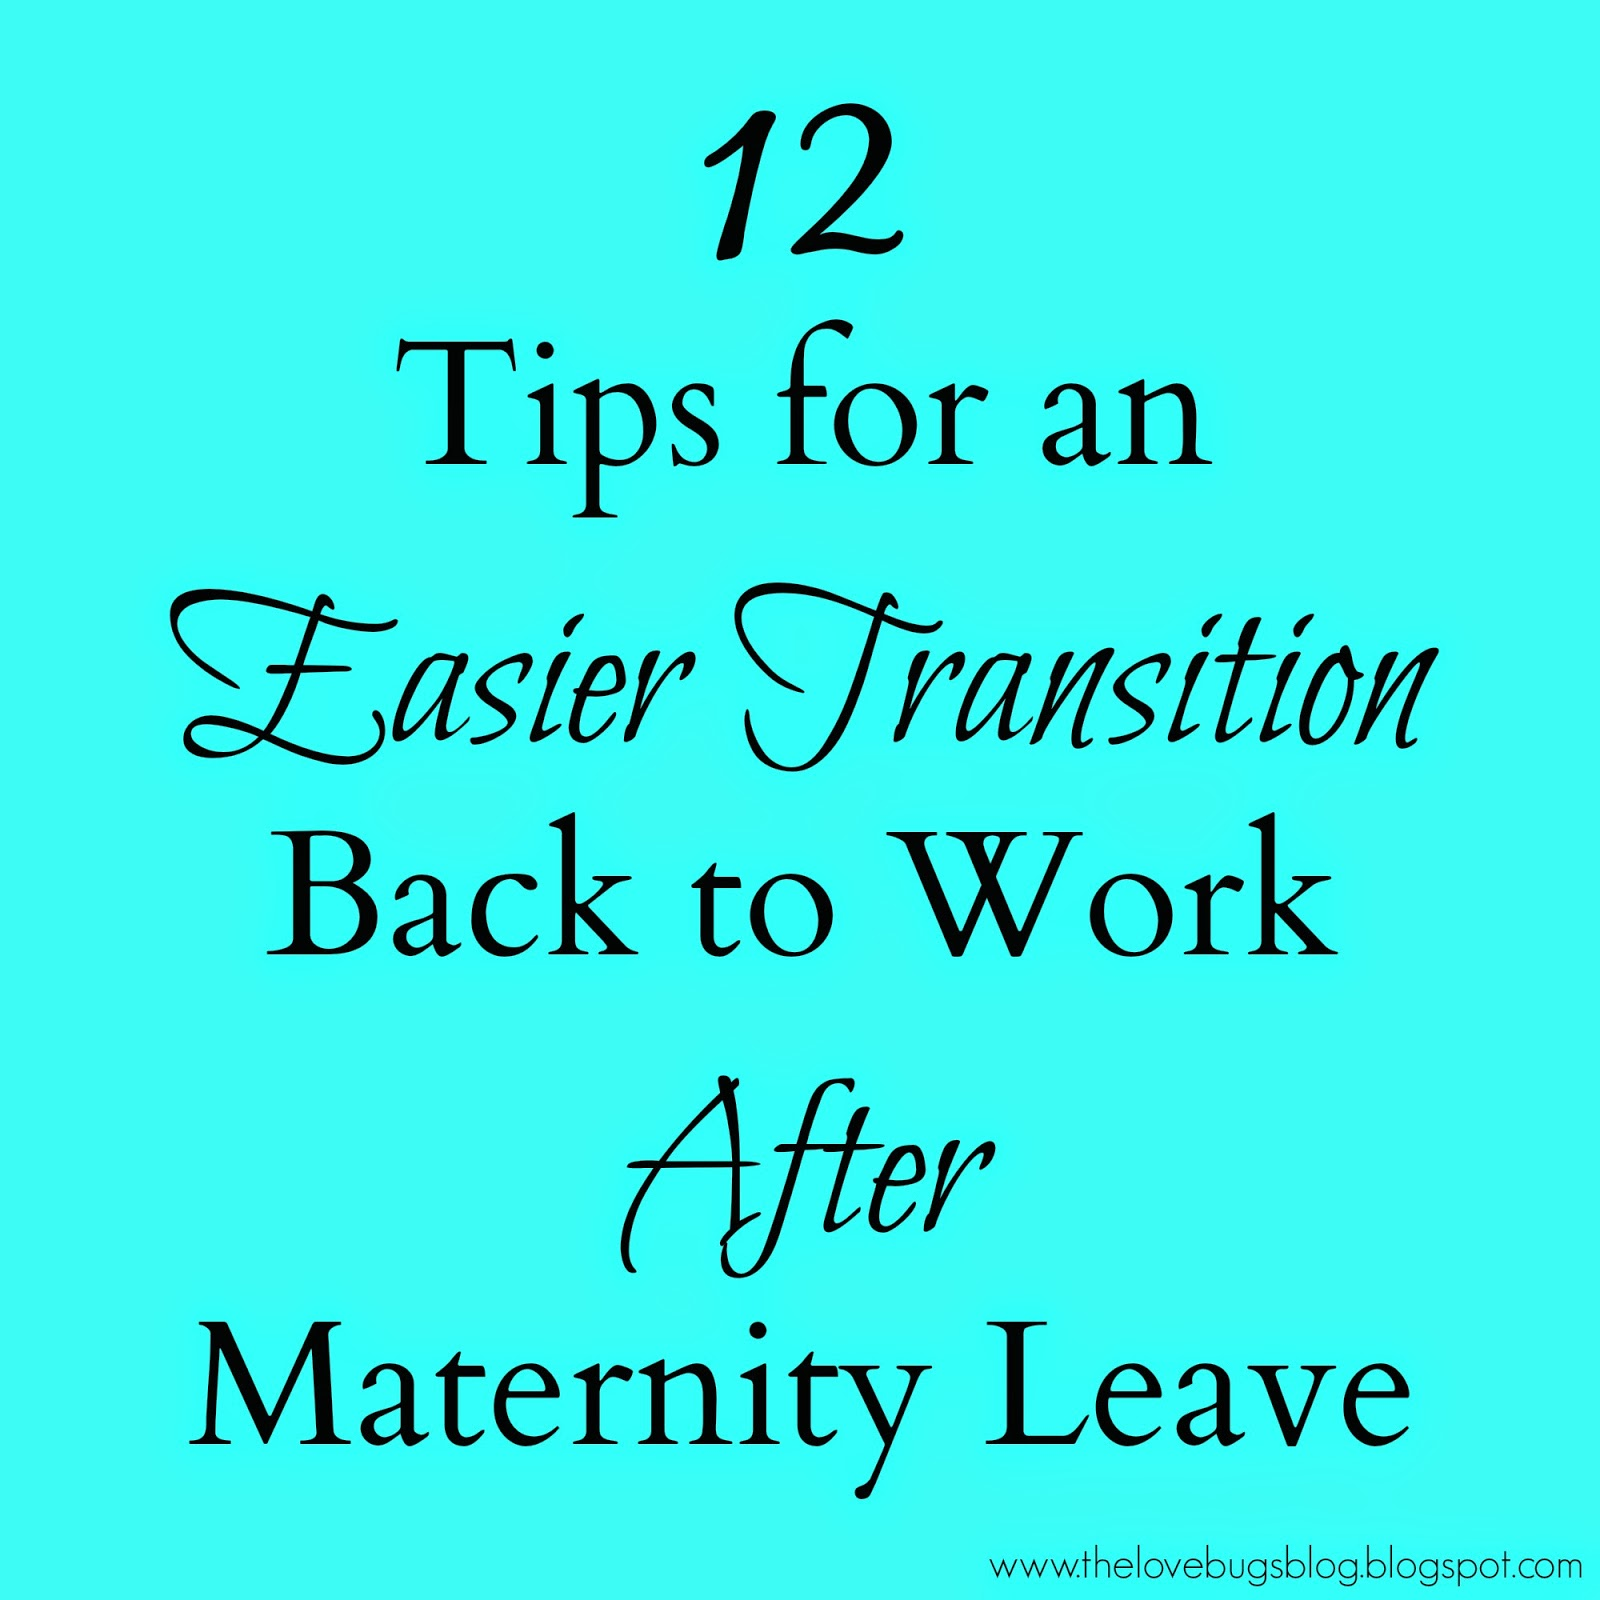 Welcome Back To Work After Maternity Leave Work after maternity leave